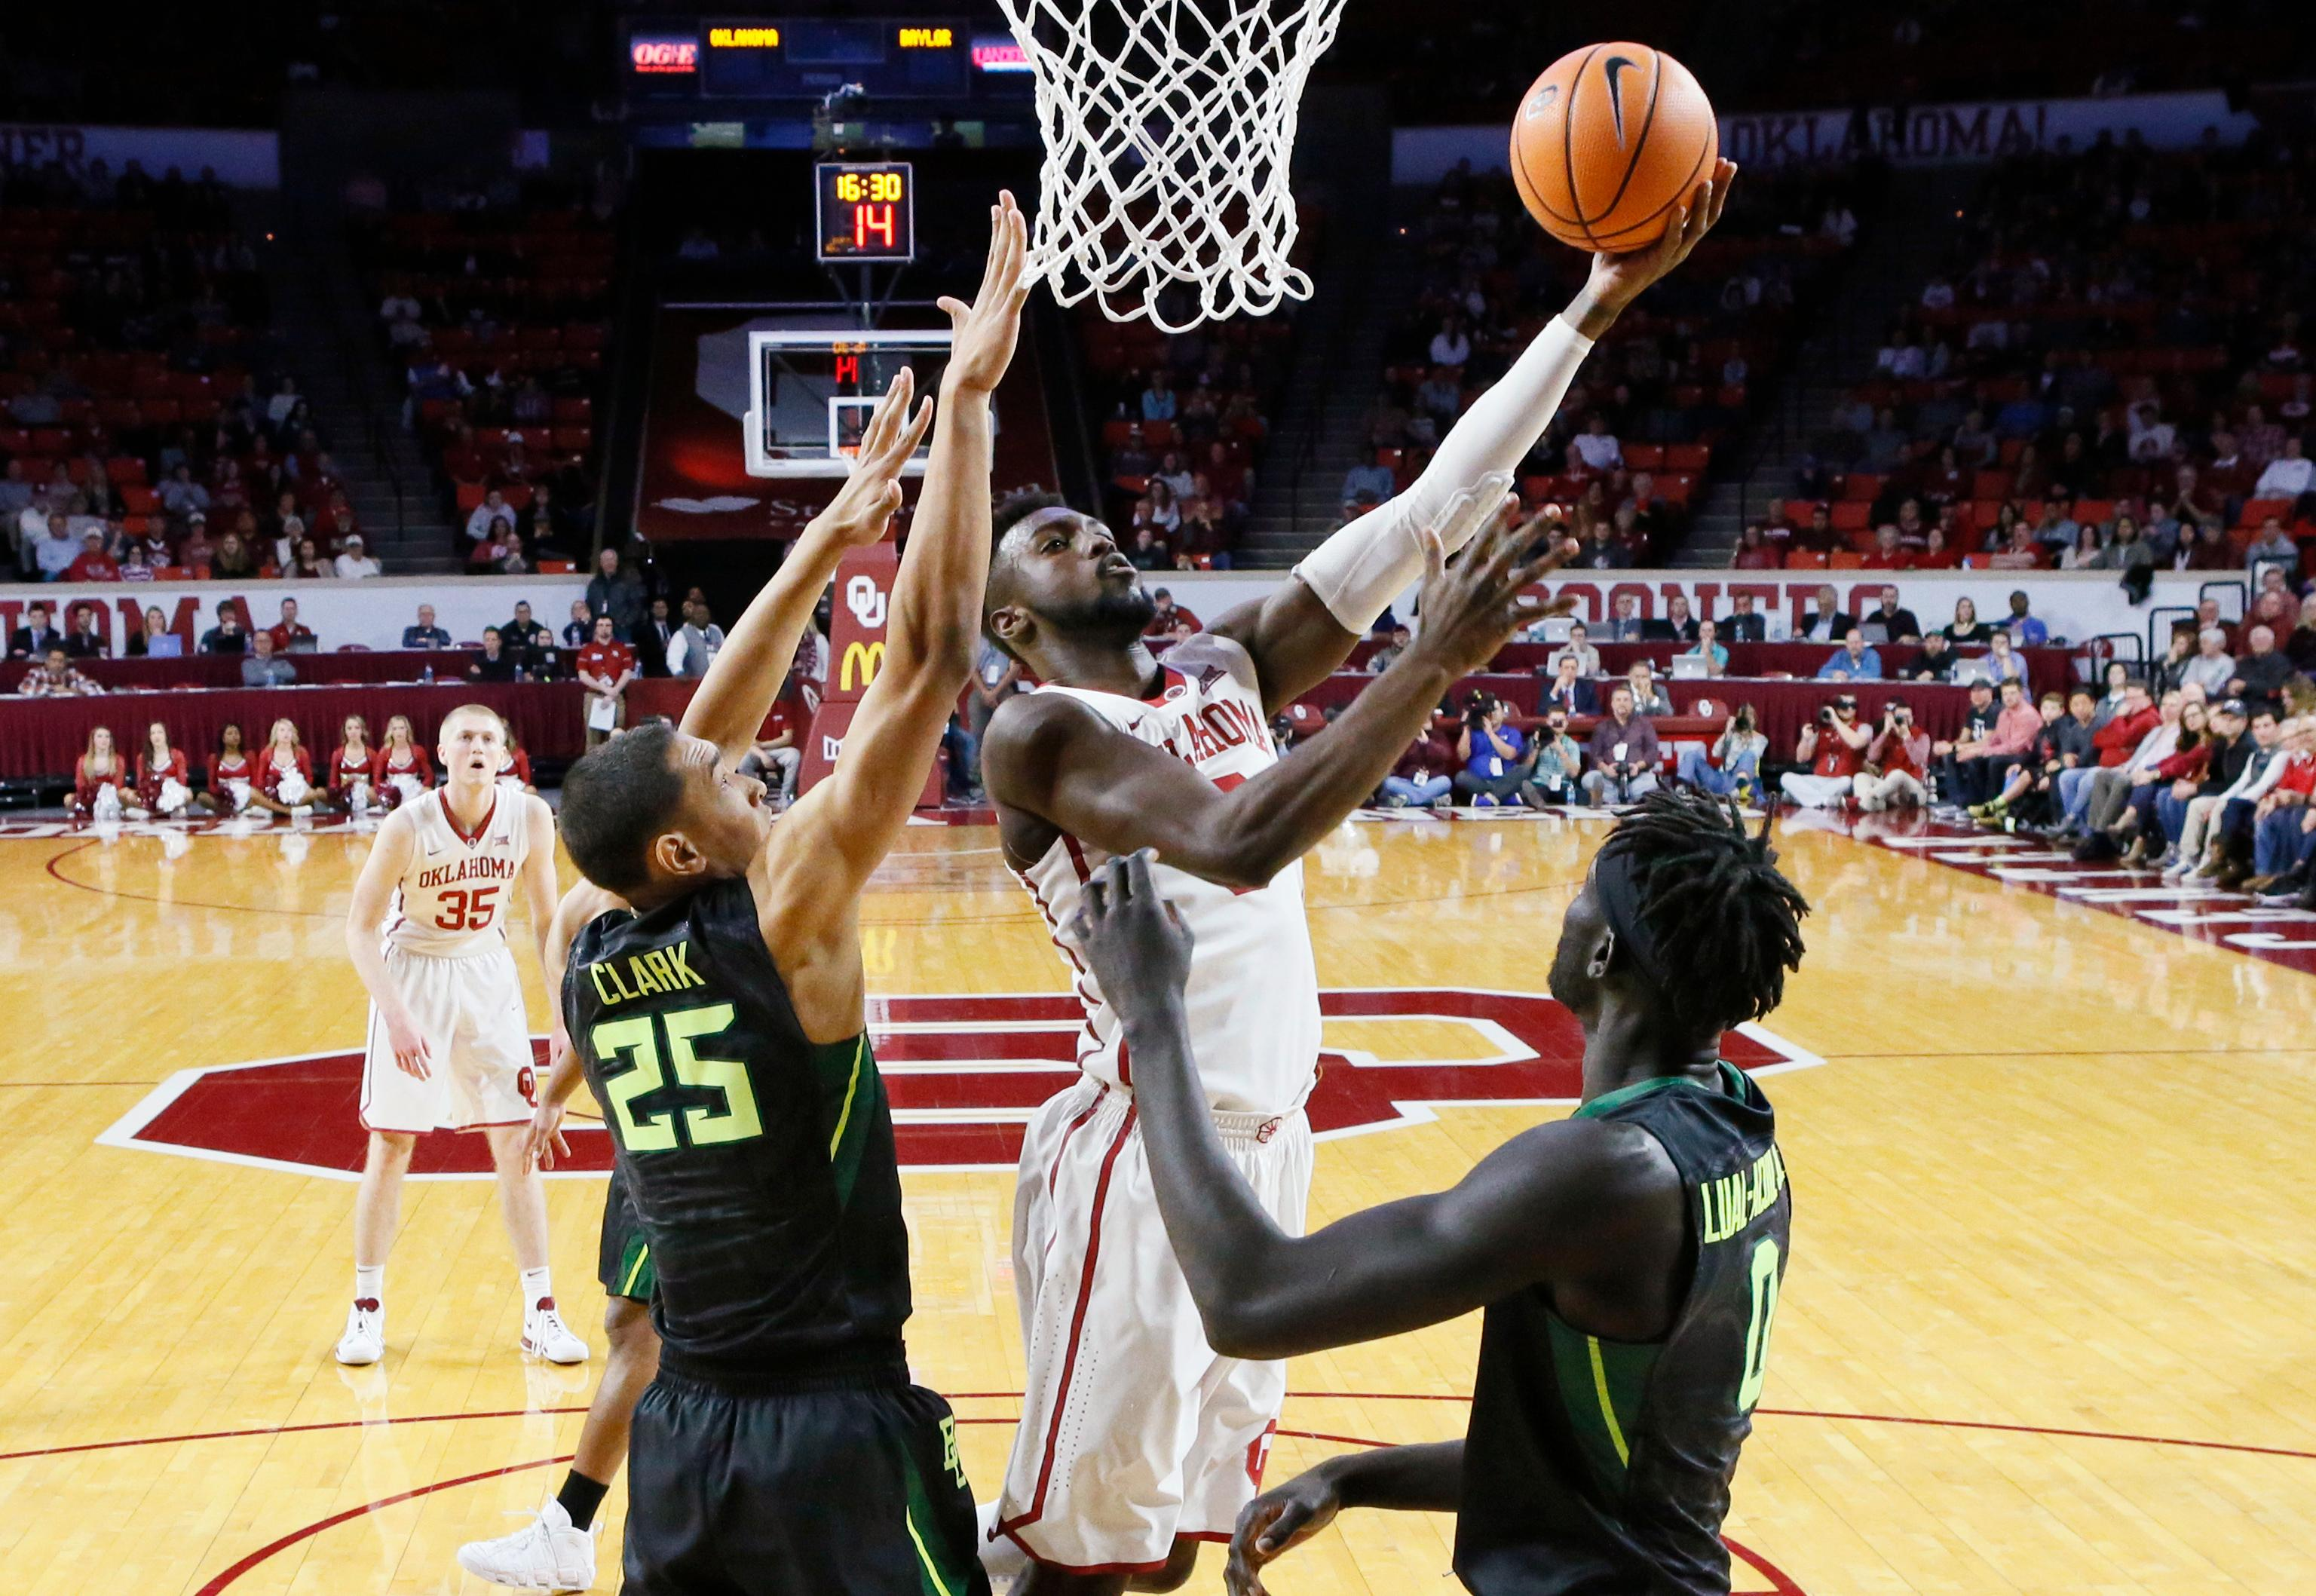 Oklahoma forward Khadeem Lattin, center, shoots between Baylor forward Tristan Clark (25) and forward Jo Lual-Acuil Jr., right, during the first half of an NCAA college basketball game in Norman, Okla., Tuesday, Jan. 30, 2018. (AP Photo/Sue Ogrocki)